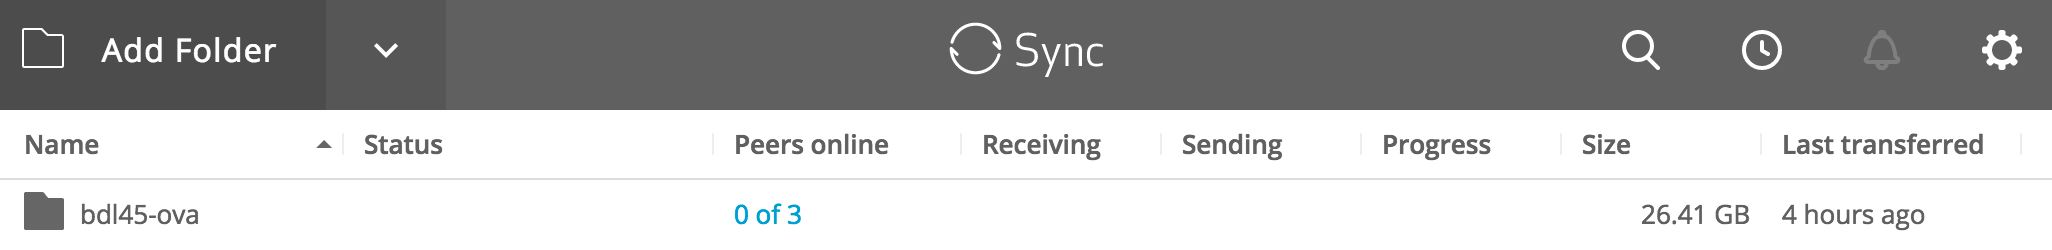 Running a Docker Container on Proxmox for BitTorrent Sync